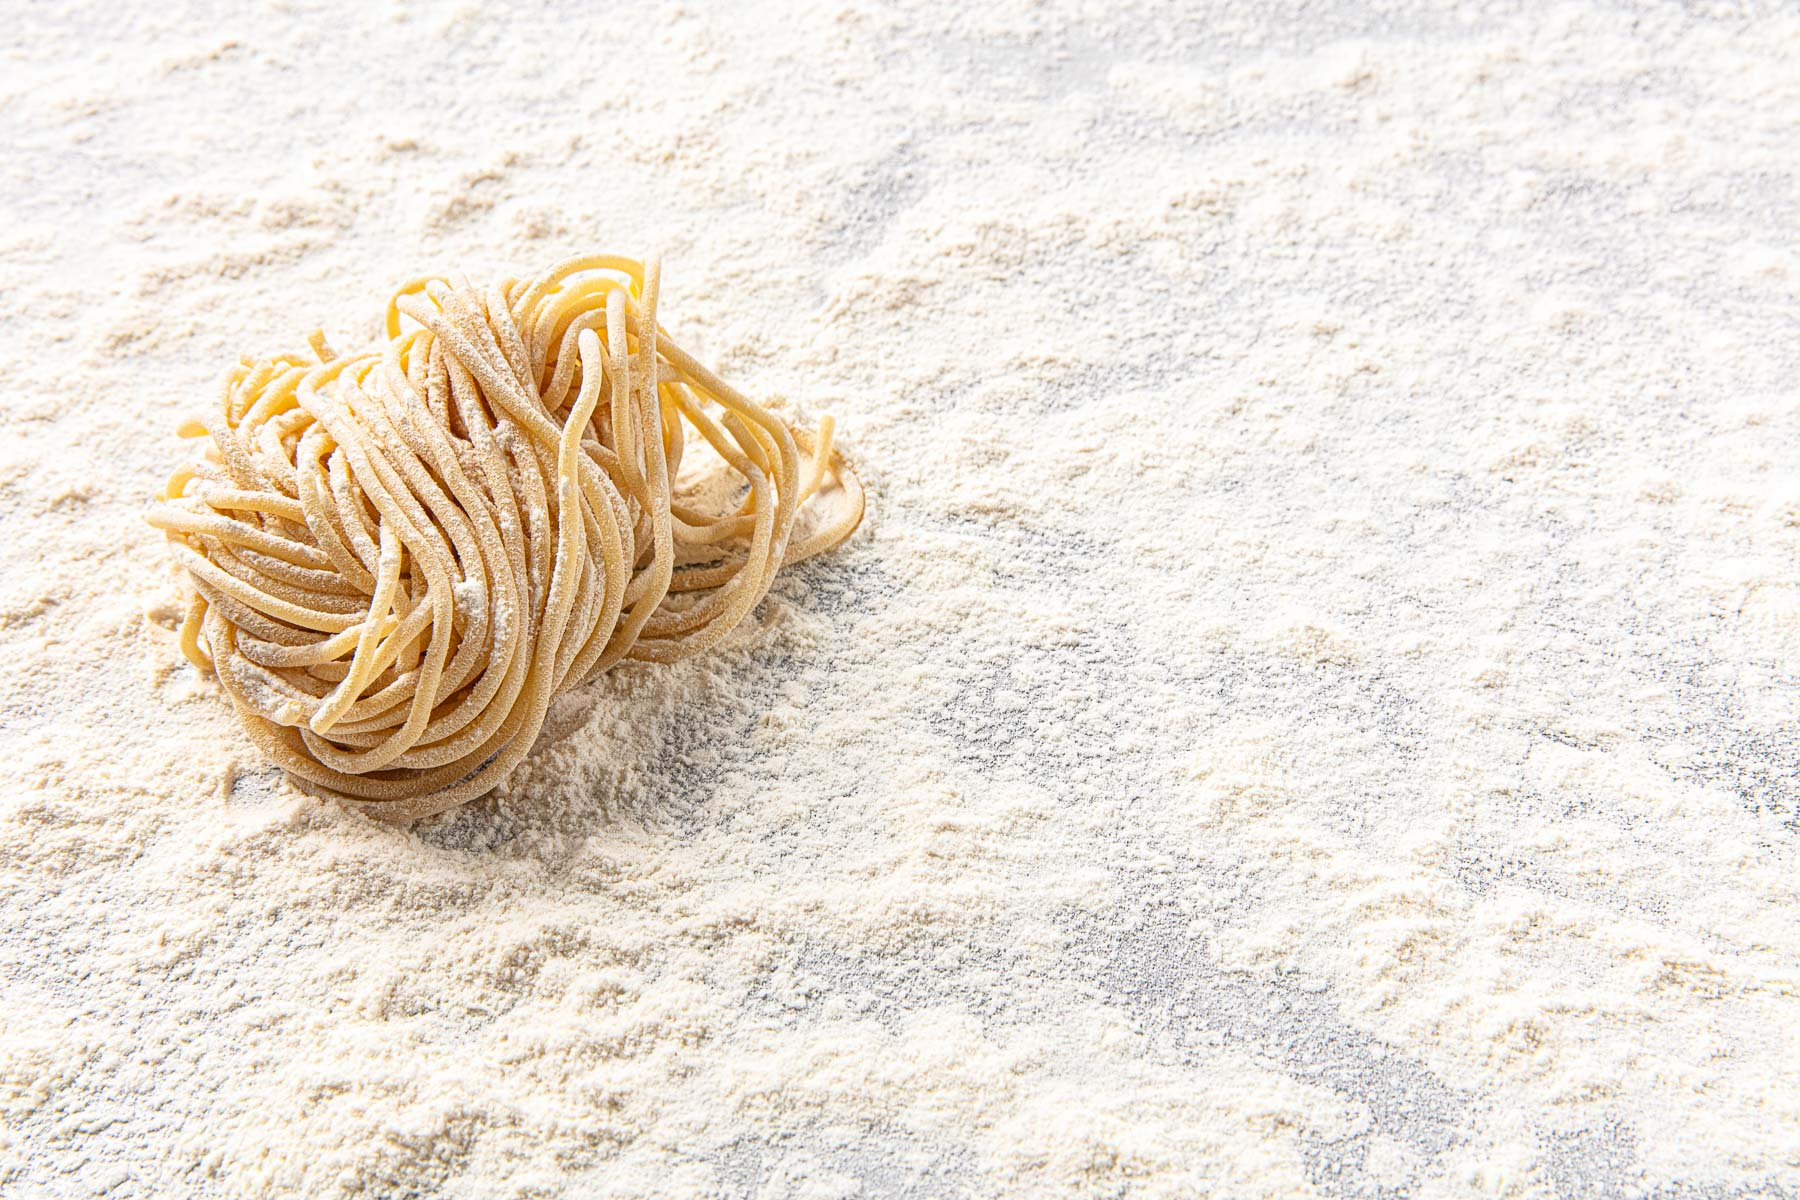 Product details of some handmade Spaghetti pasta on floured surface.